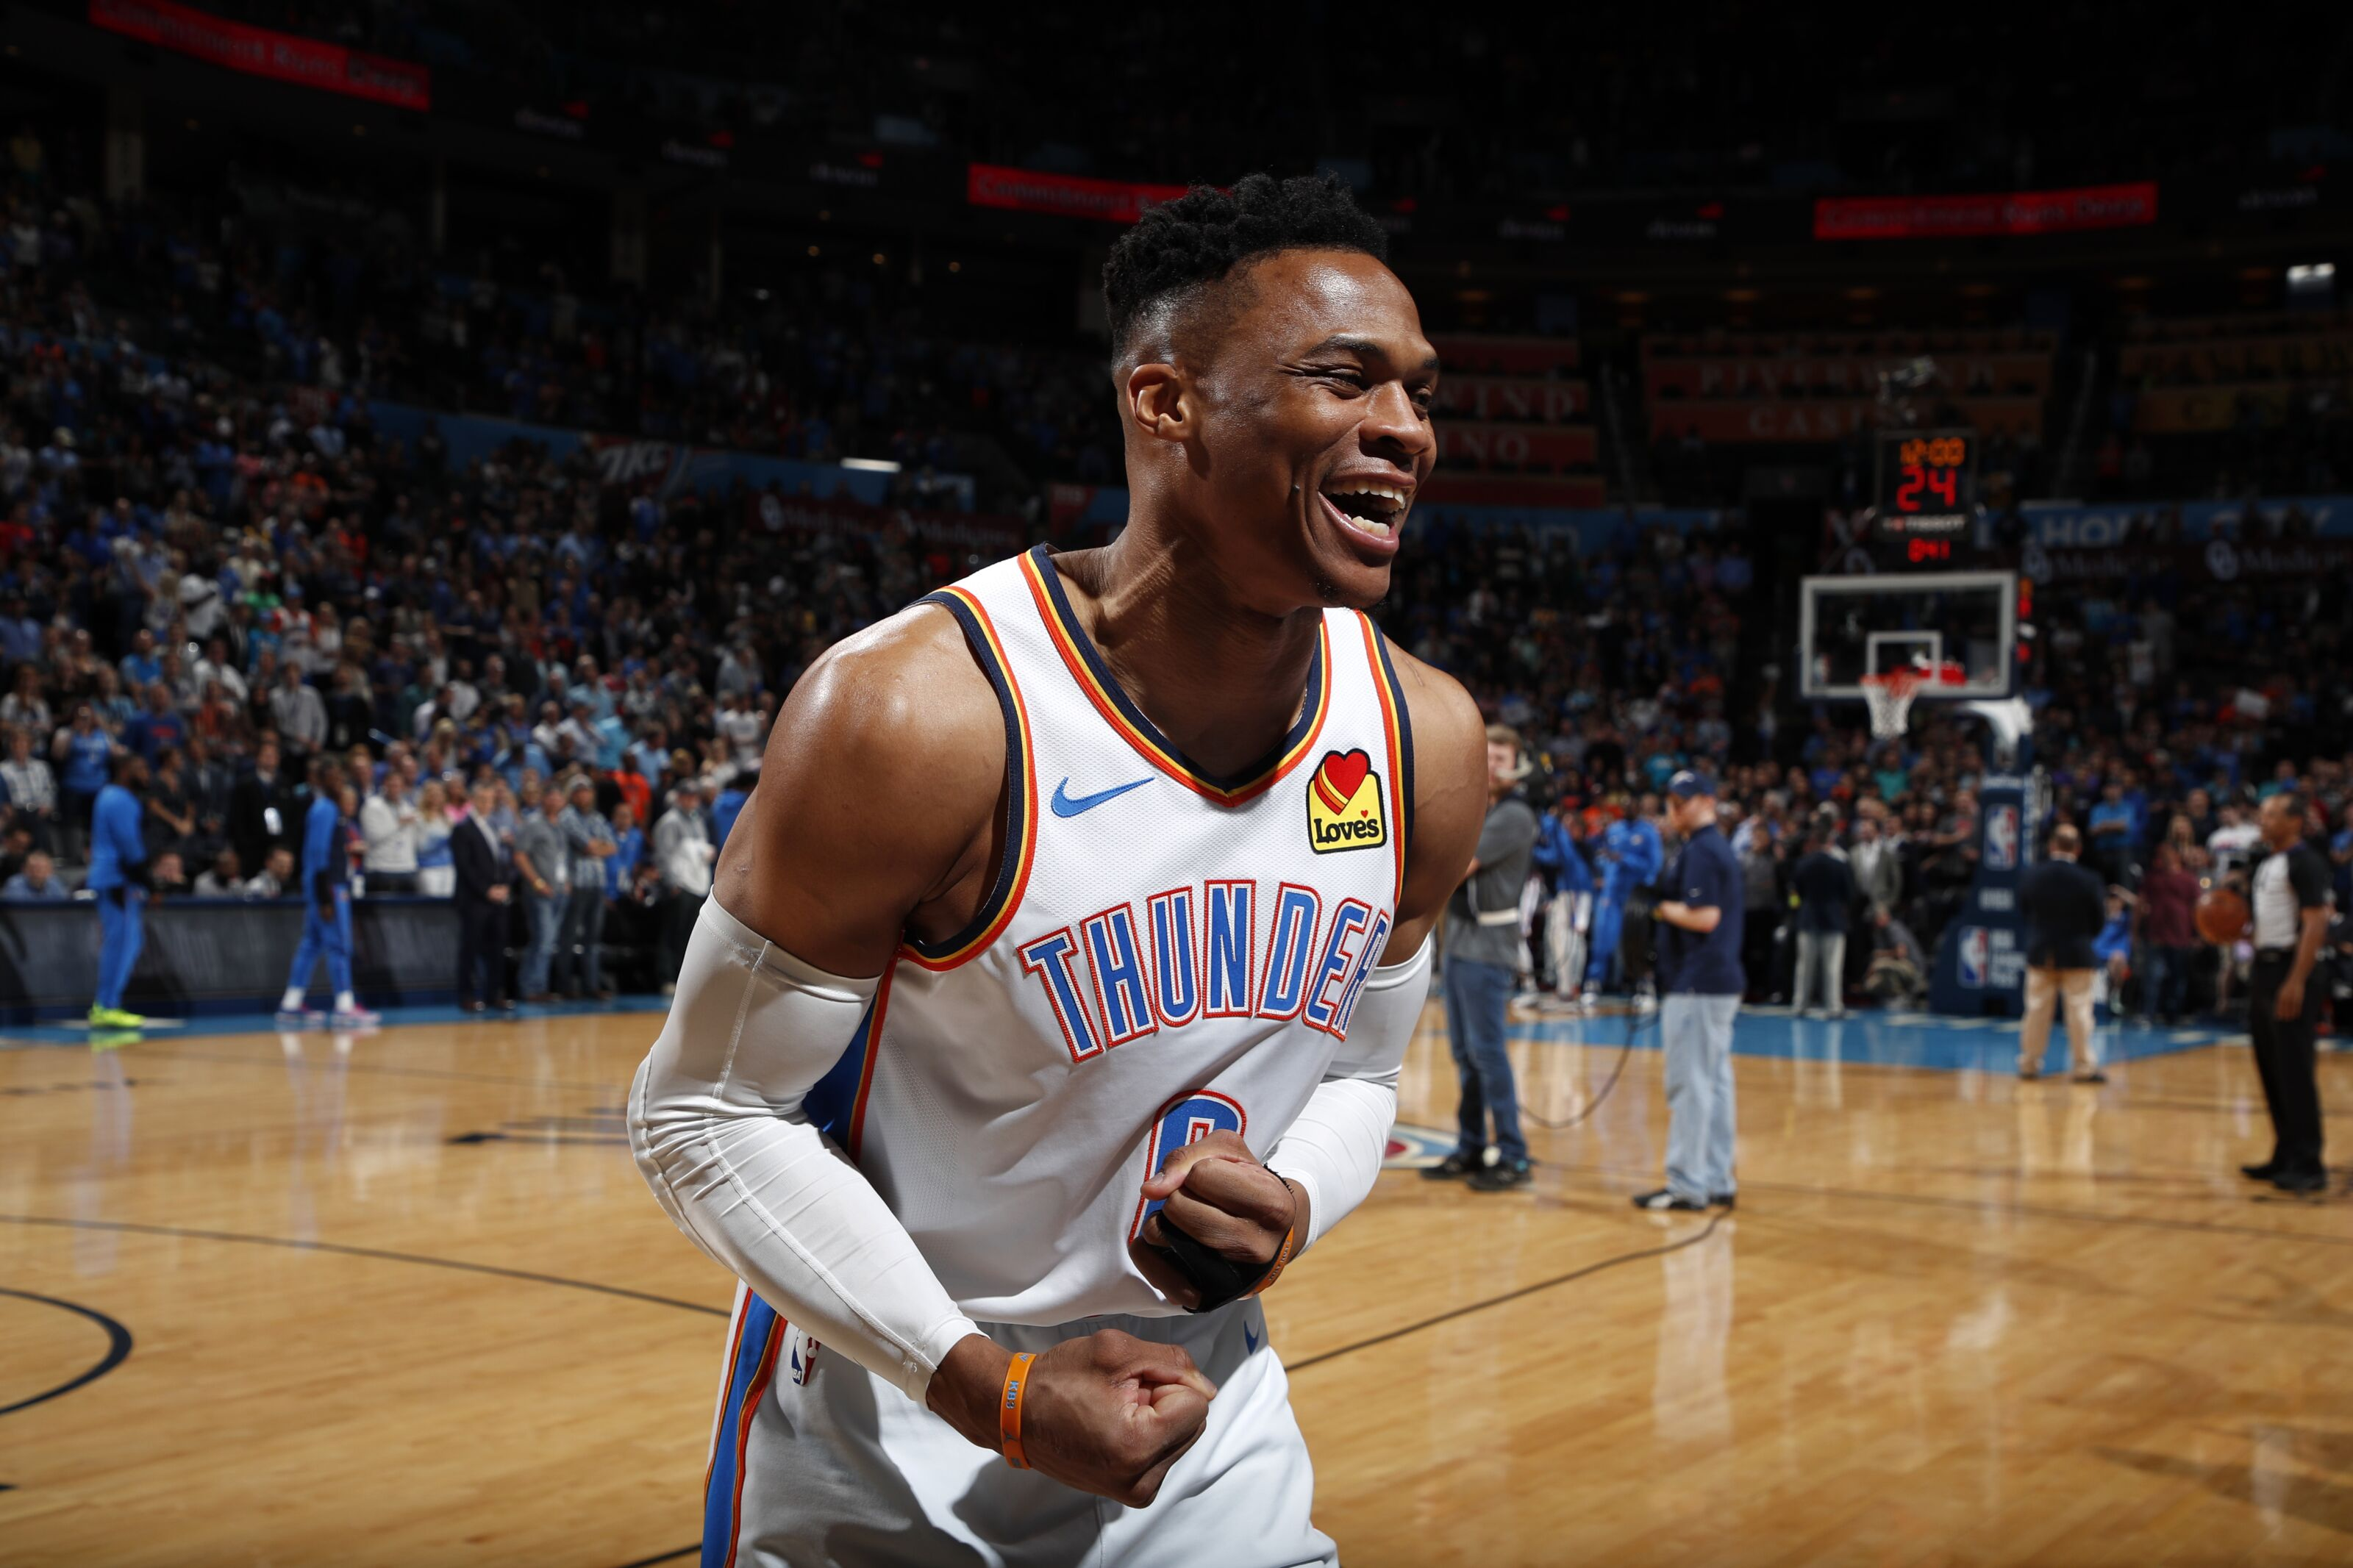 Nipsey Night: OKC Thunder guard Russell Westbrook posts double